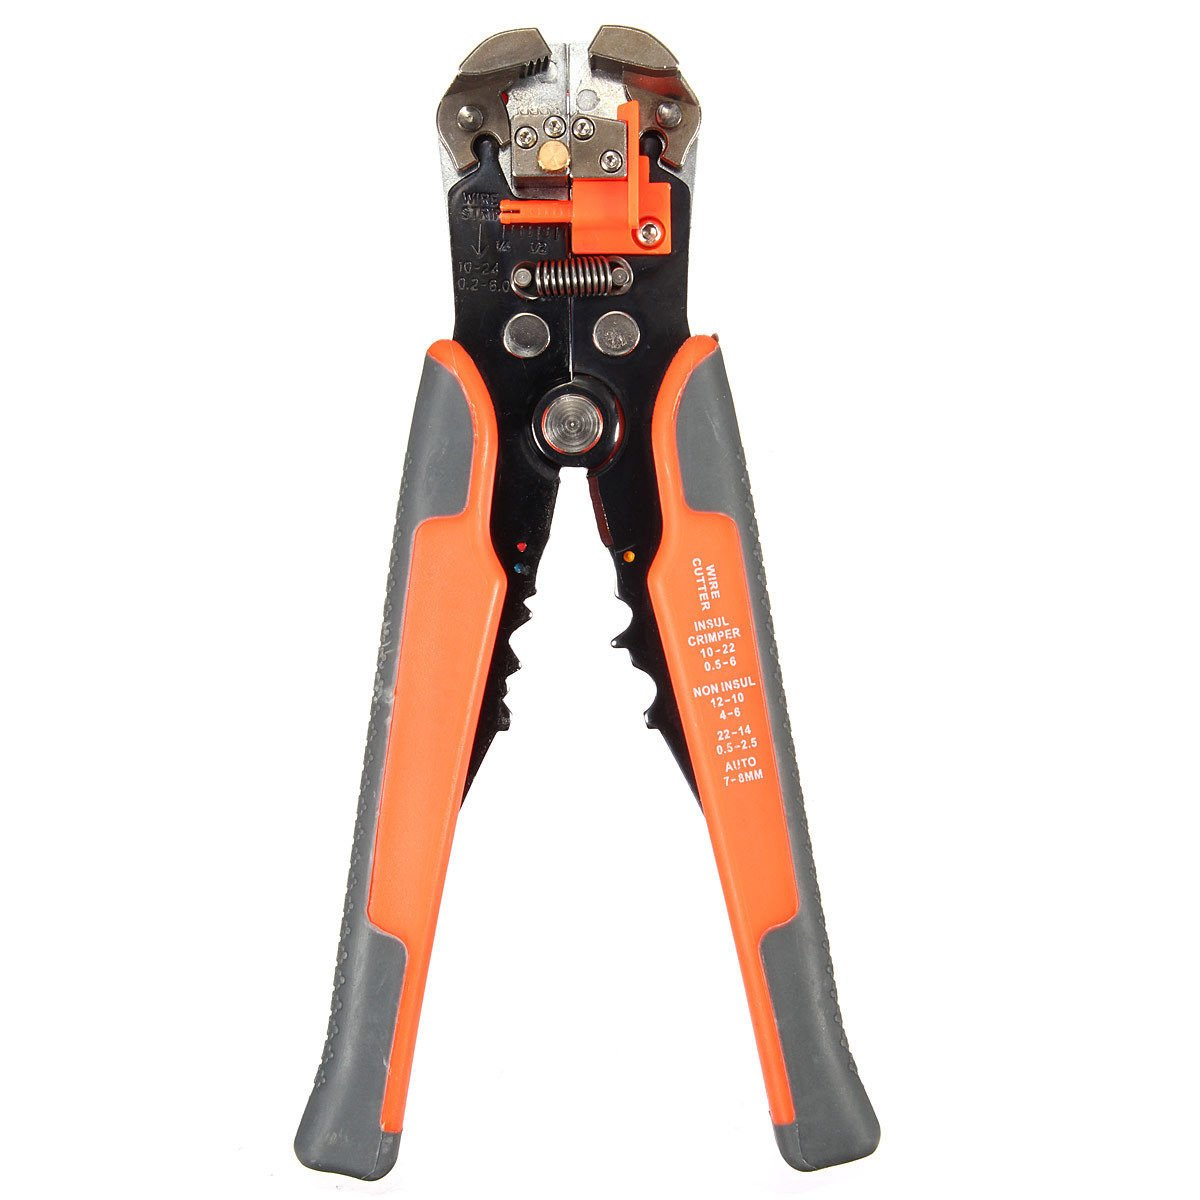 Agile-shop Professional Multifunction Automatic Wire Cutter Stripper Crimper Pliers Terminal Tool by Agile-shop (Image #3)